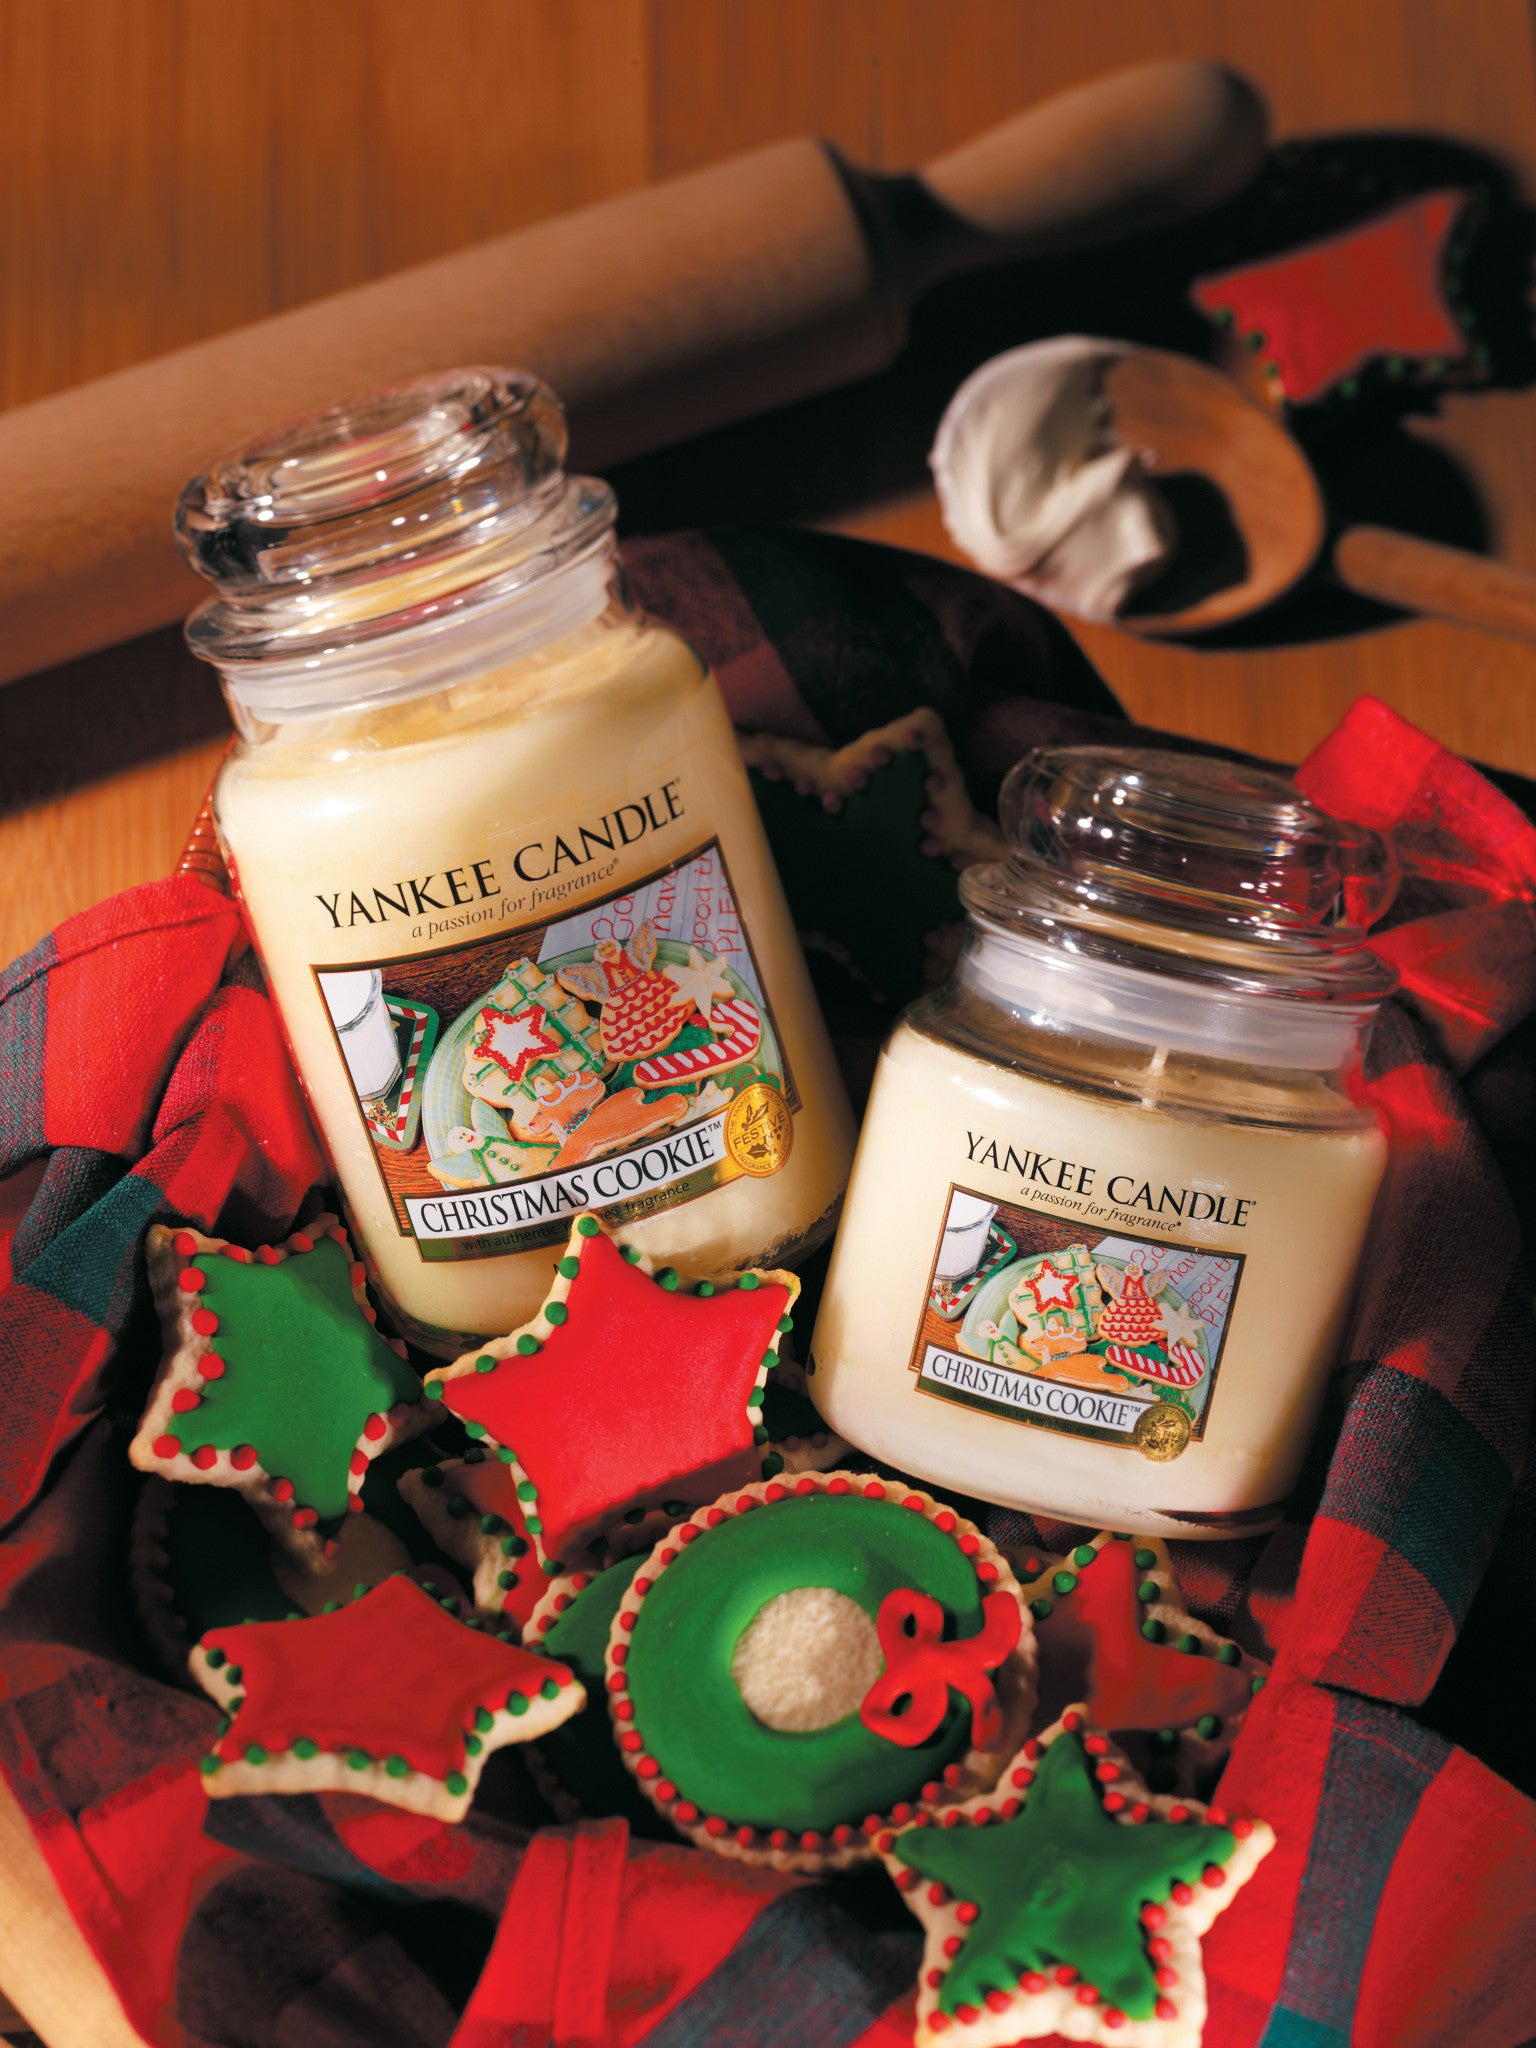 CHRISTMAS COOKIE -Yankee Candle- Candela Sampler